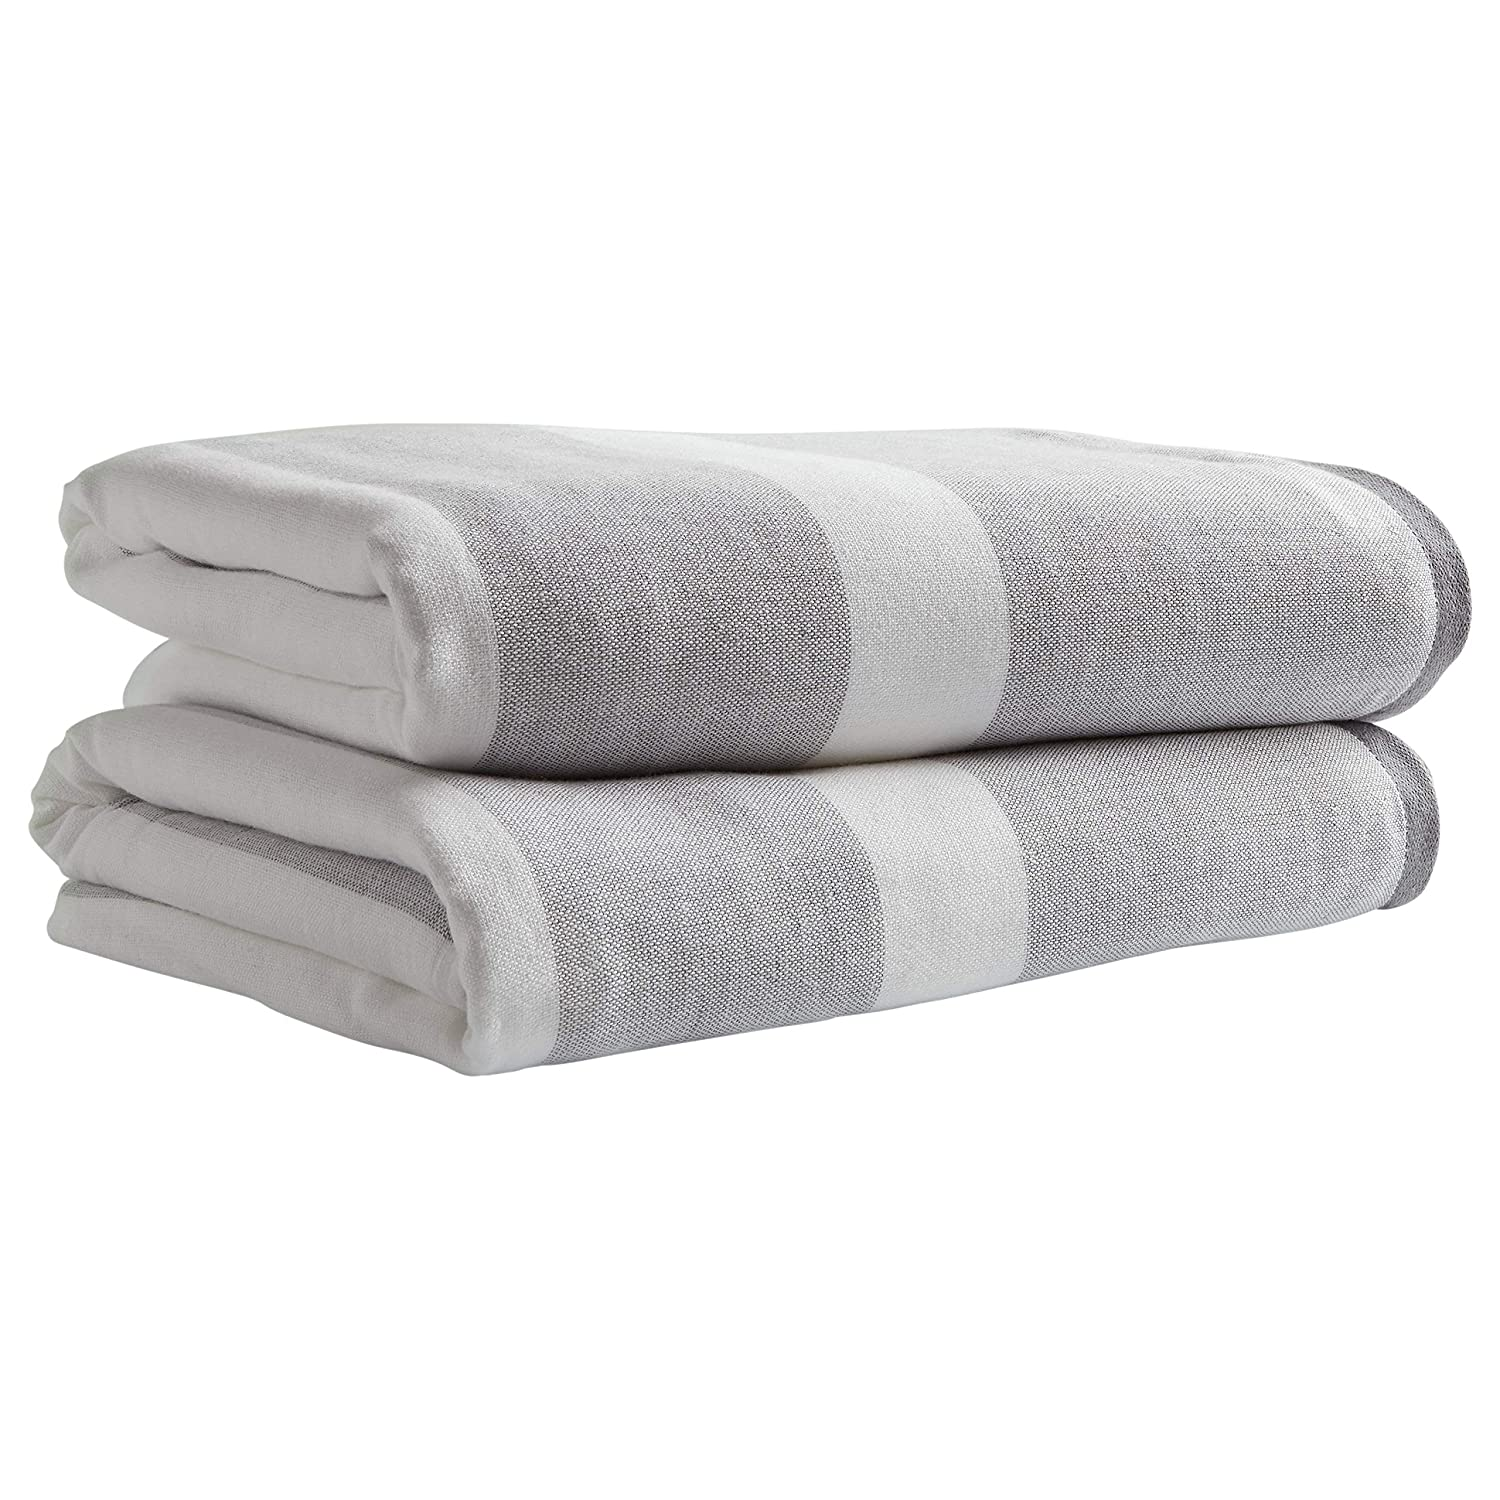 Stone & Beam Casual Striped Cotton Bath Towels, 2-Pack, Grey